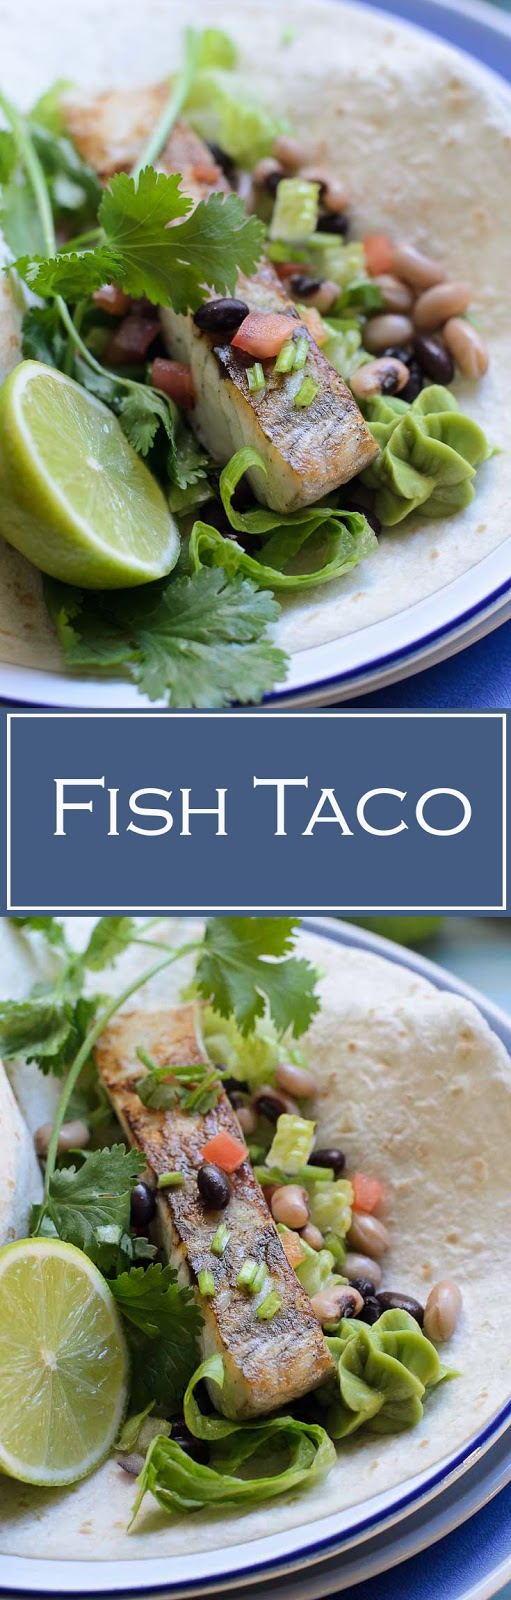 Summer meal of  fish taco